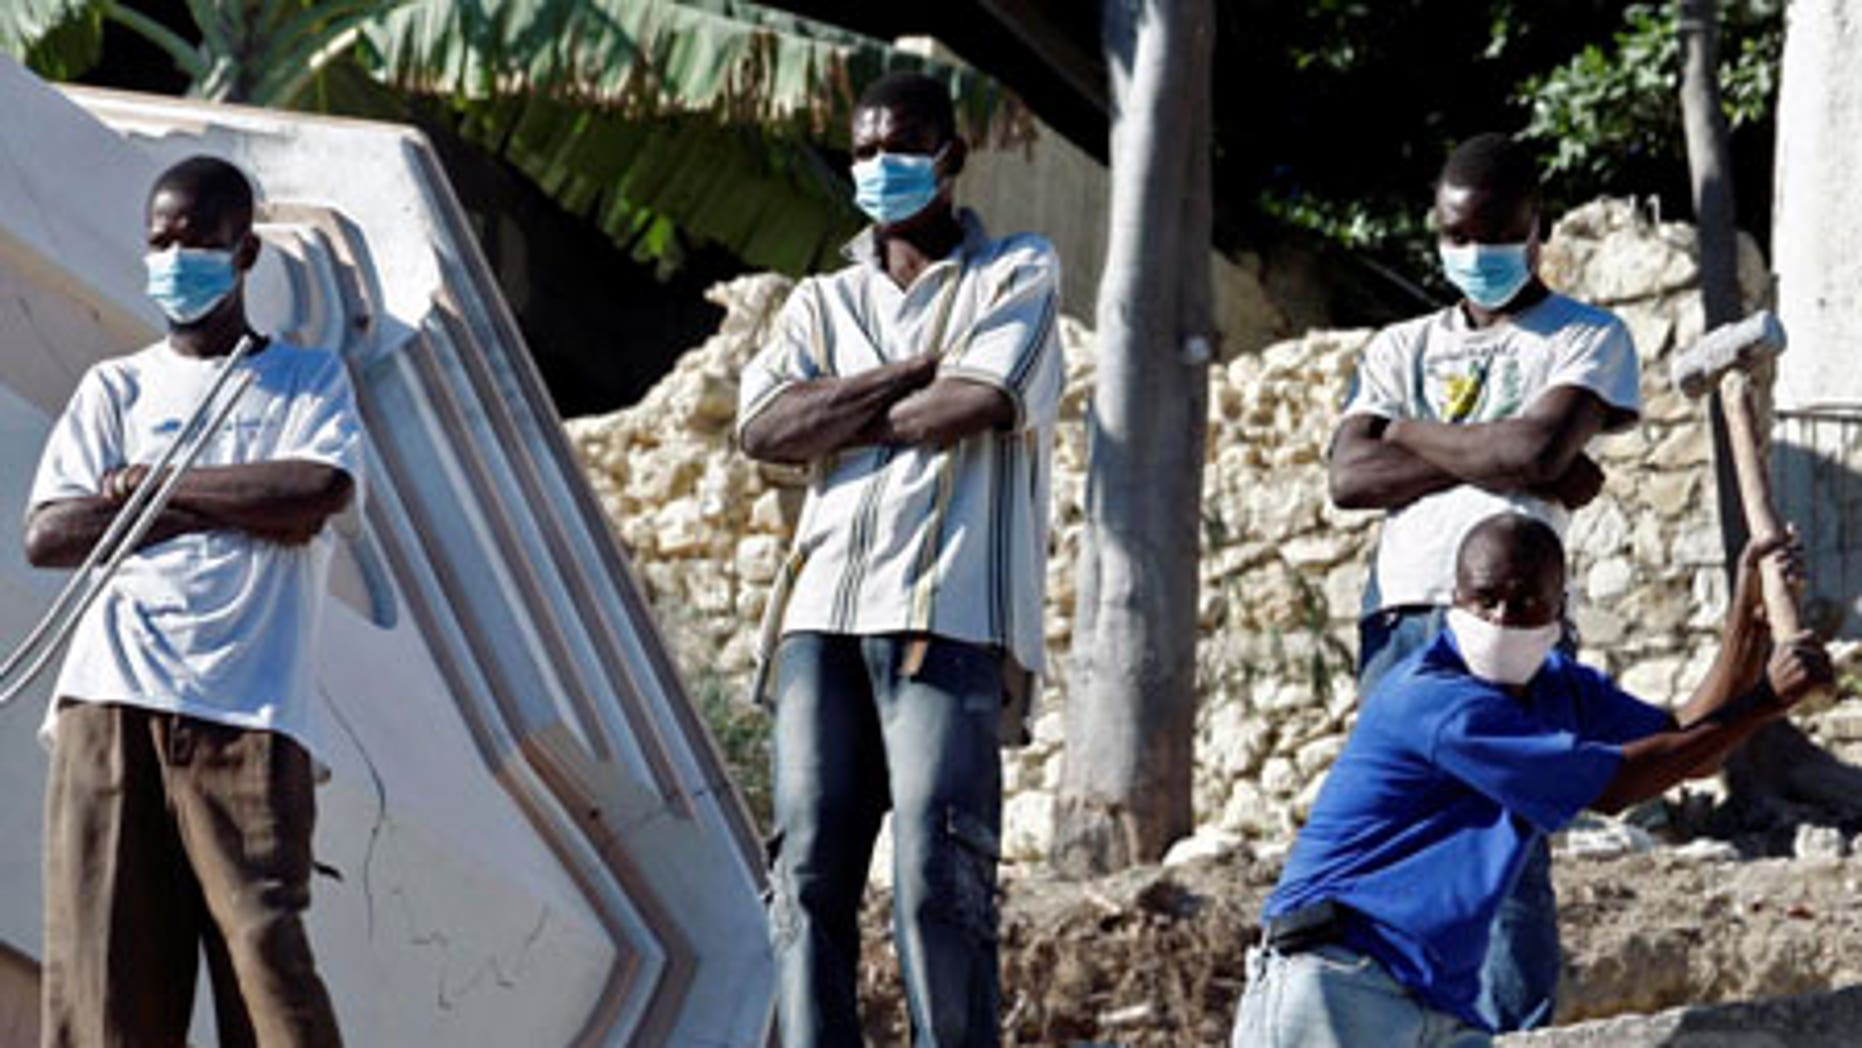 Jan. 14: Young men stand watch as another digs through debris in the shattered Haitian capital of Port-au-Prince. Tensions are rising as aid slowly filters in.